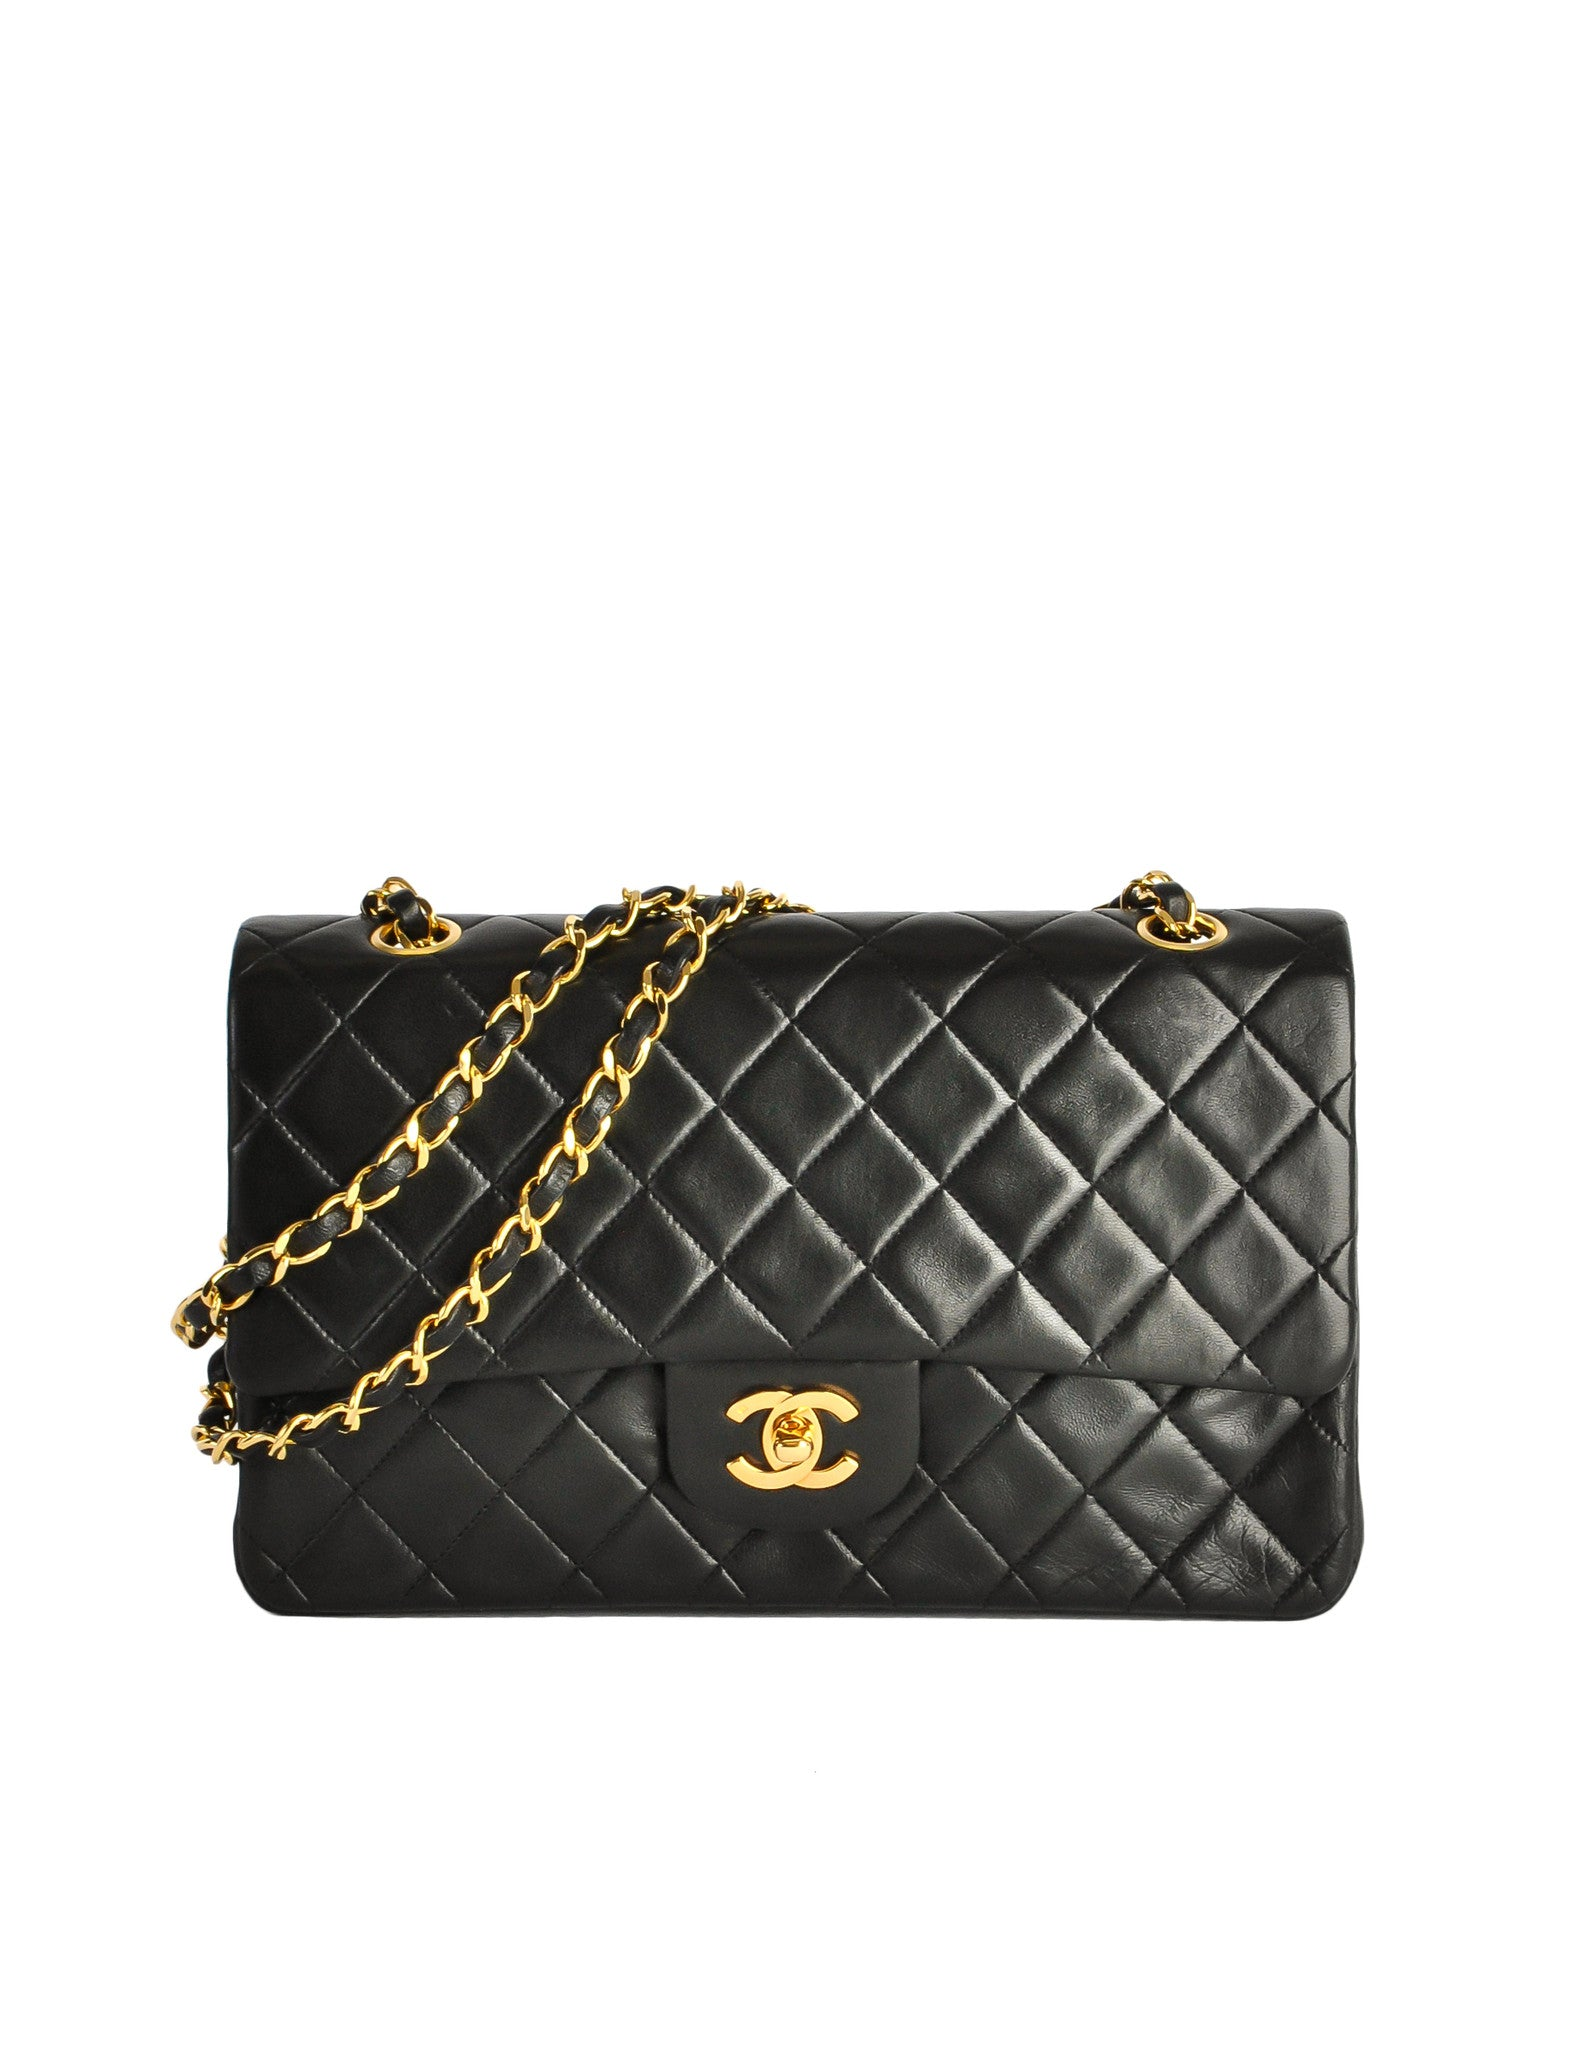 43c9b48b332a Chanel Vintage Black Quilted Lambskin Leather Classic Double Flap Bag -  Amarcord Vintage Fashion - 1